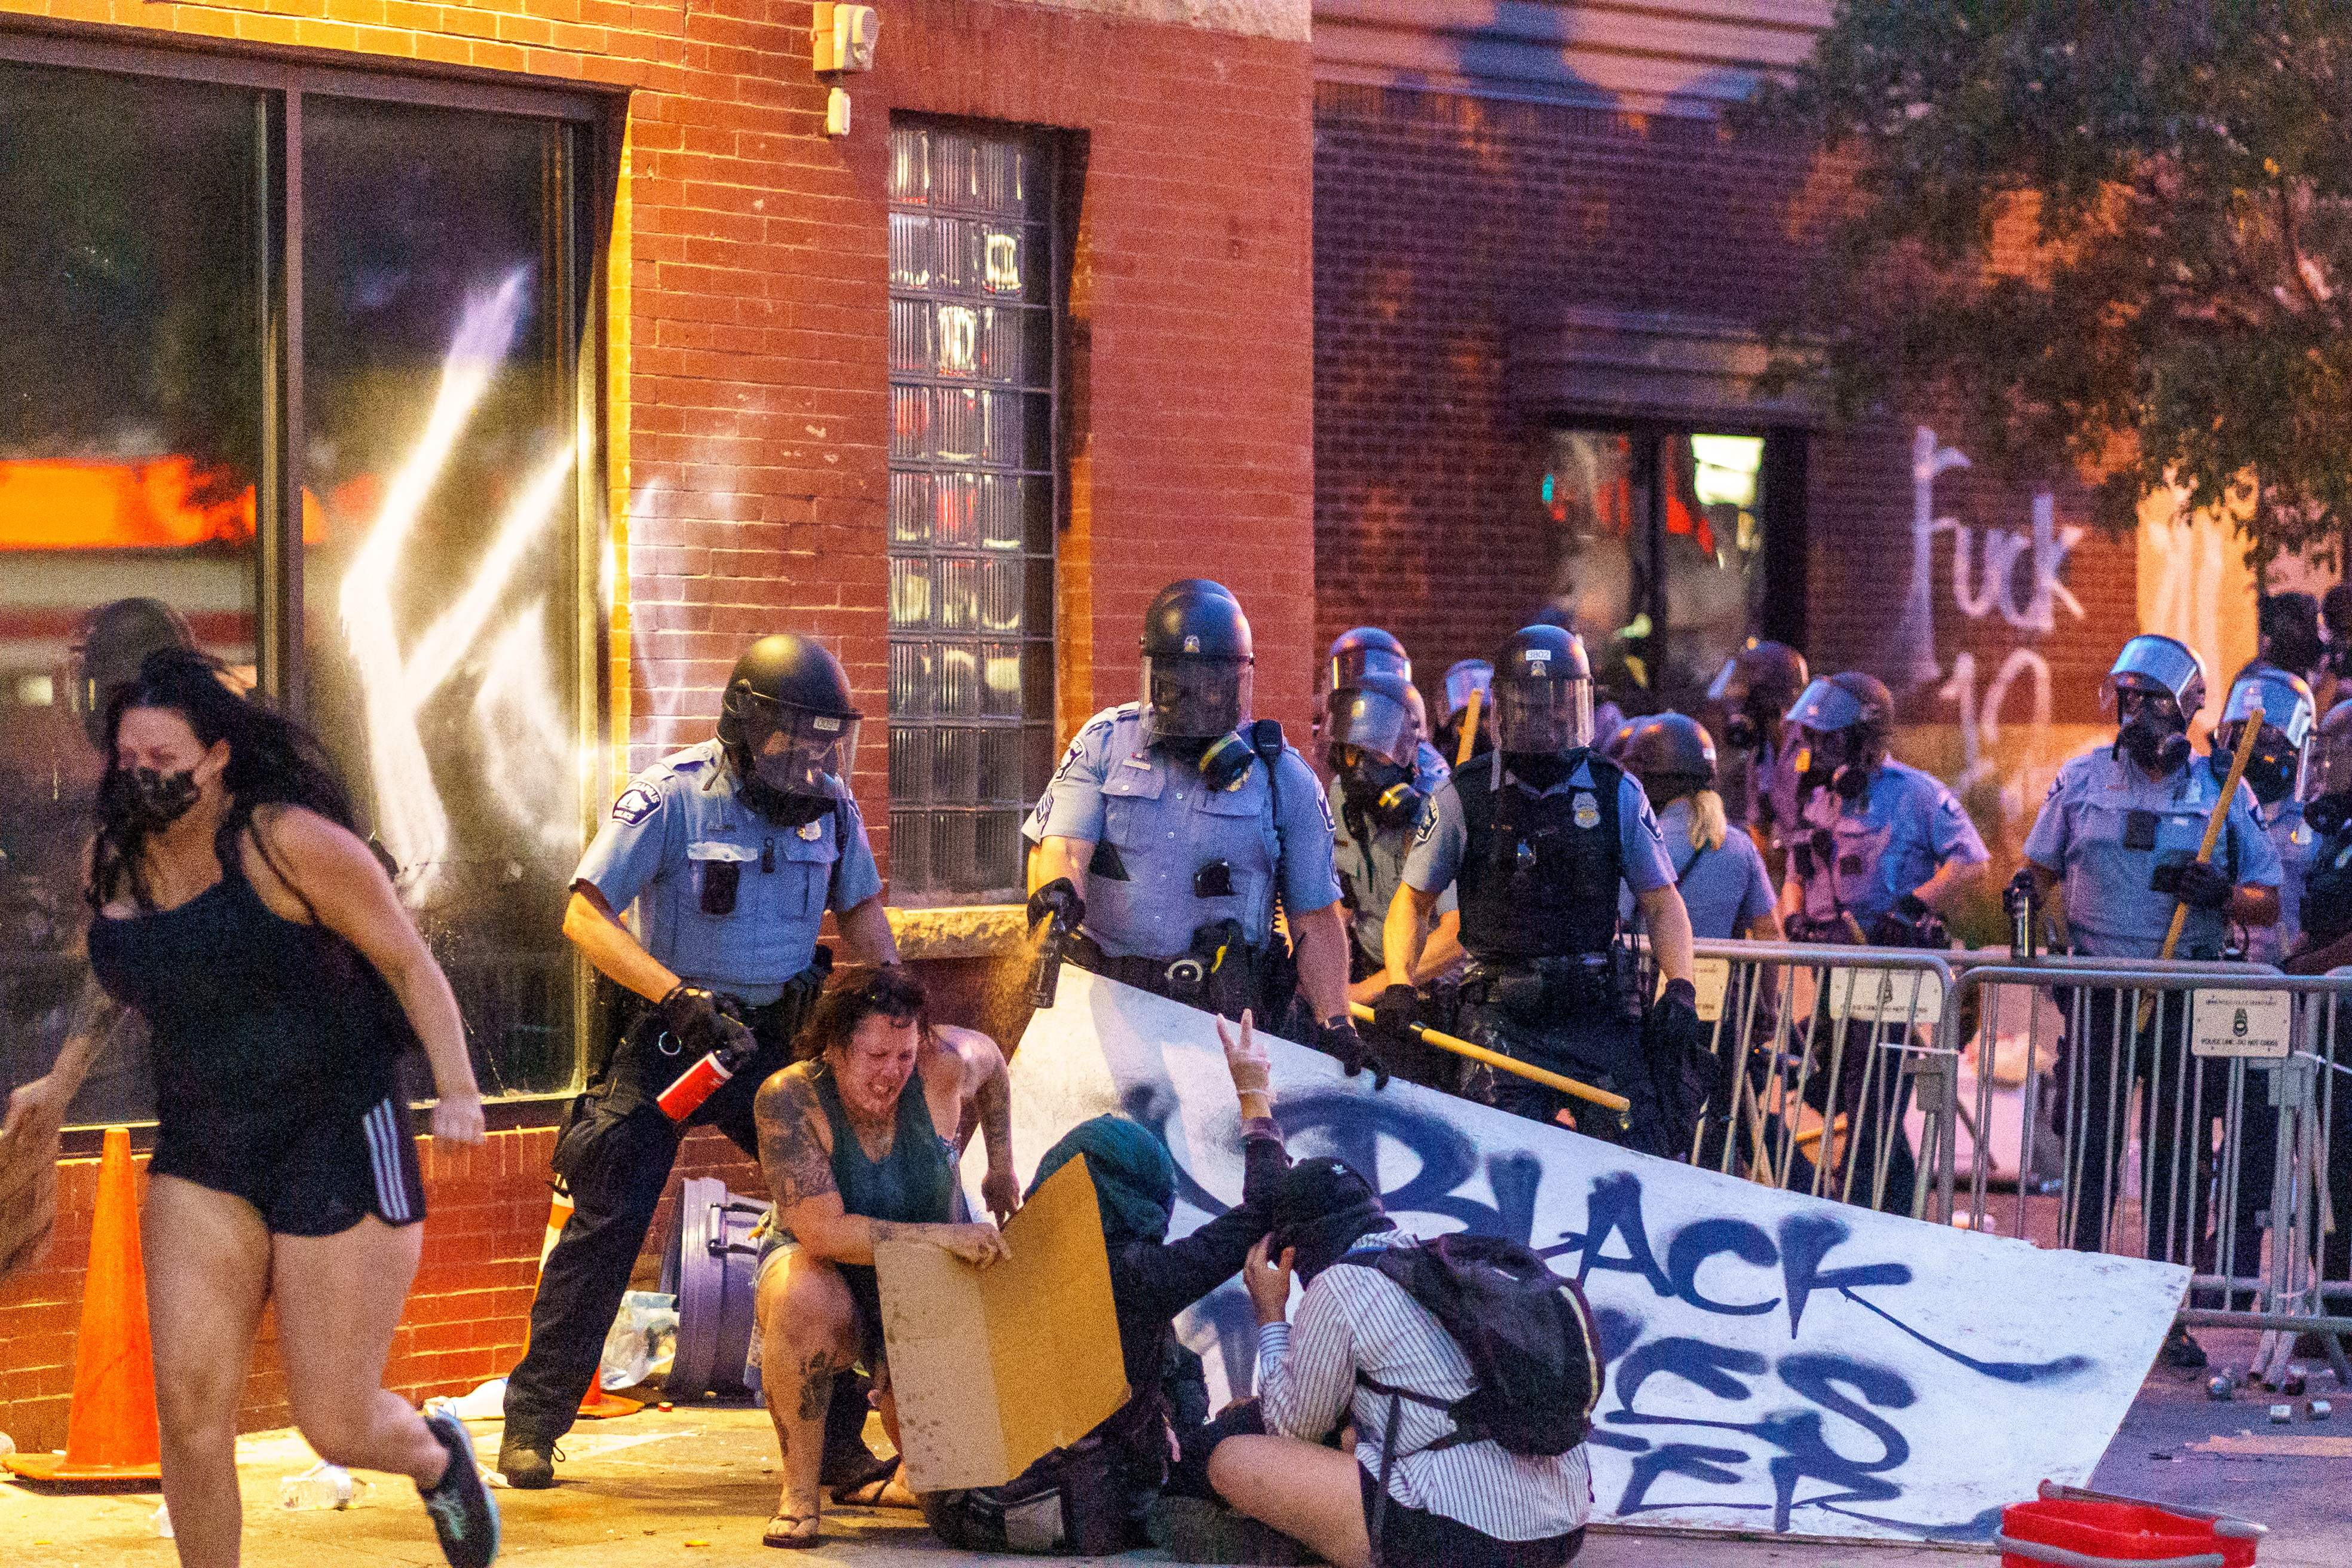 Police spray protesters with pepper spray during a demonstration over the killing of George Floyd by a policeman outside the Third Police Precinct on May 27, 2020 in Minneapolis, Minnesota. (KEREM YUCEL/AFP via Getty Images)